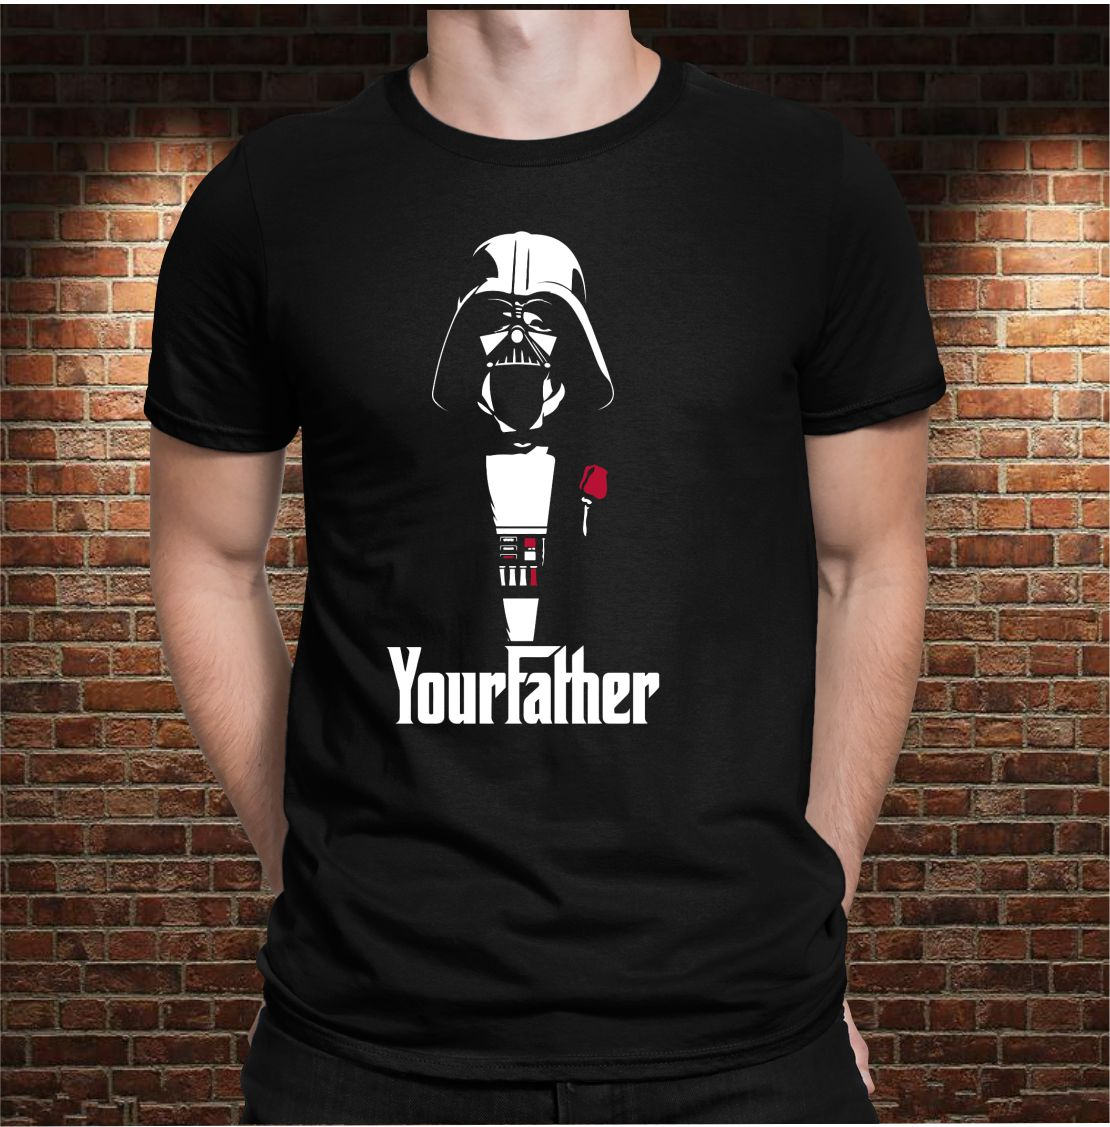 CAMISETA DARTH CORLEONE